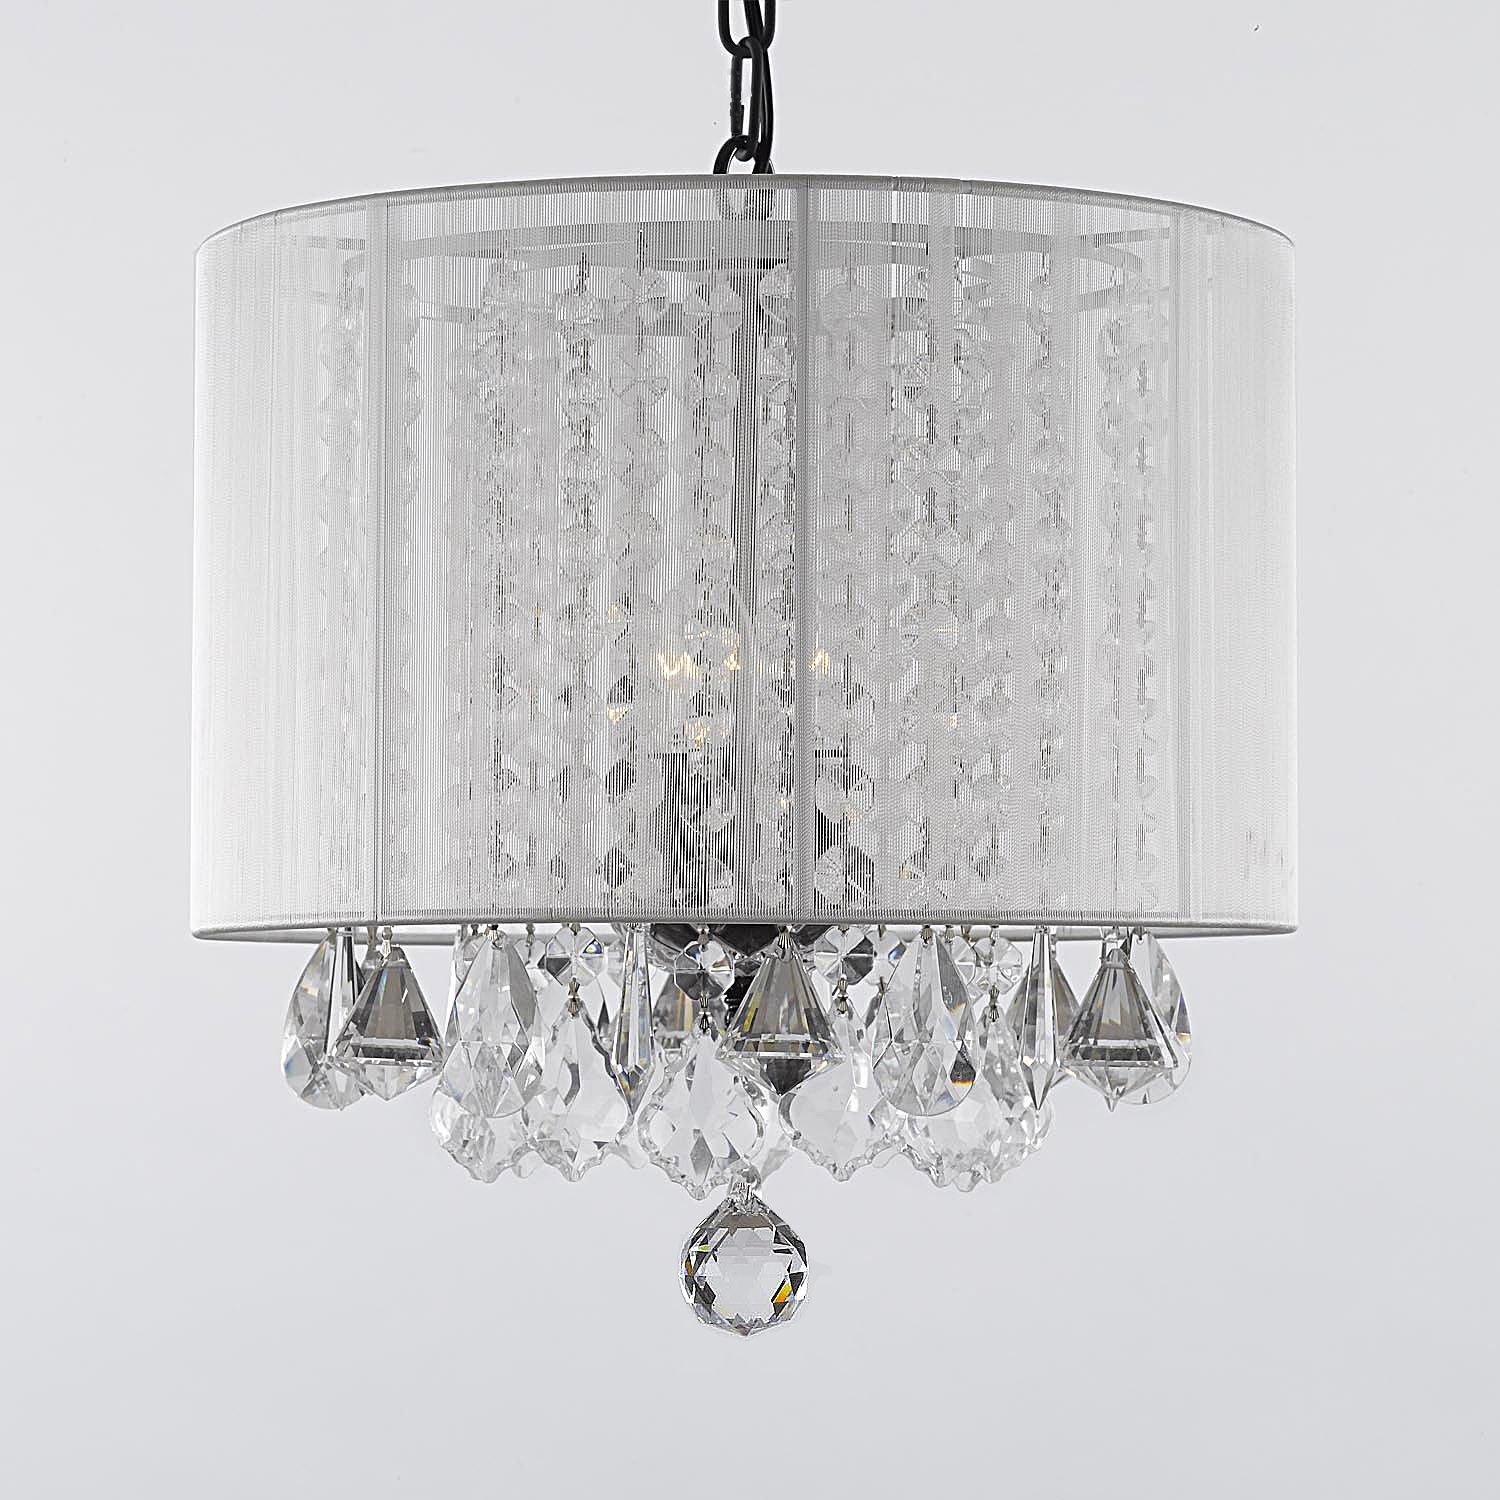 $99 G7 White/sm/604/3 Gallery Chandeliers With Shades Intended For Aurore 4 Light Crystal Chandeliers (View 22 of 30)